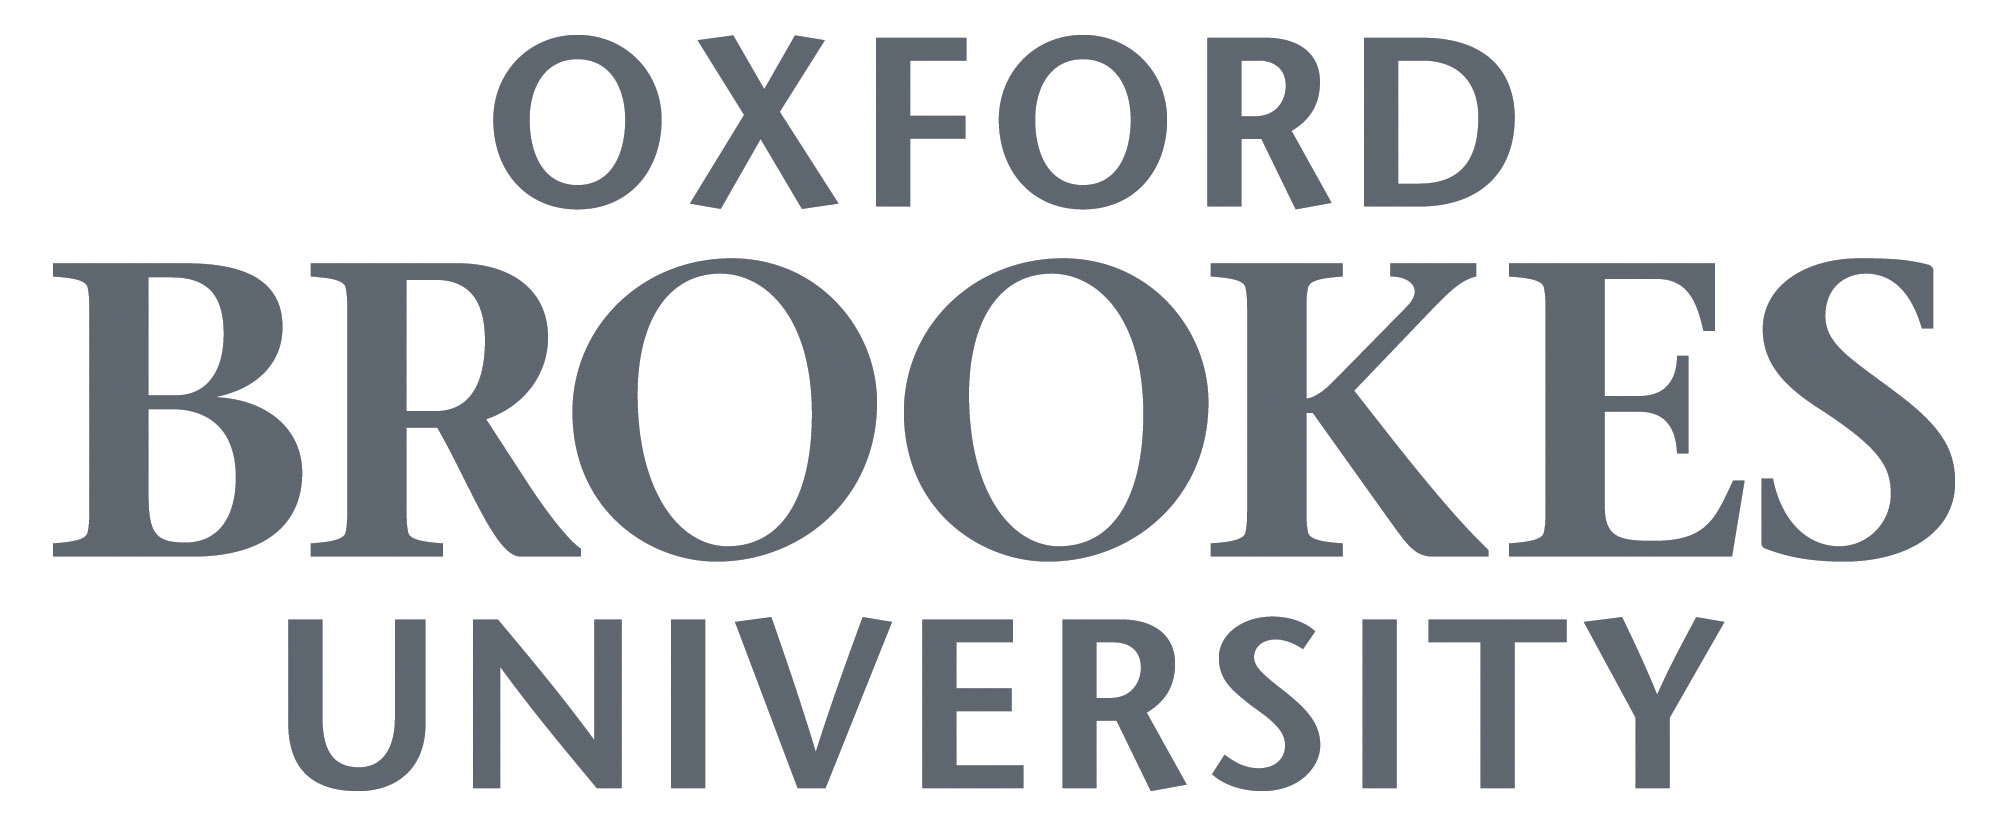 Oxford Brookes University img-responsive